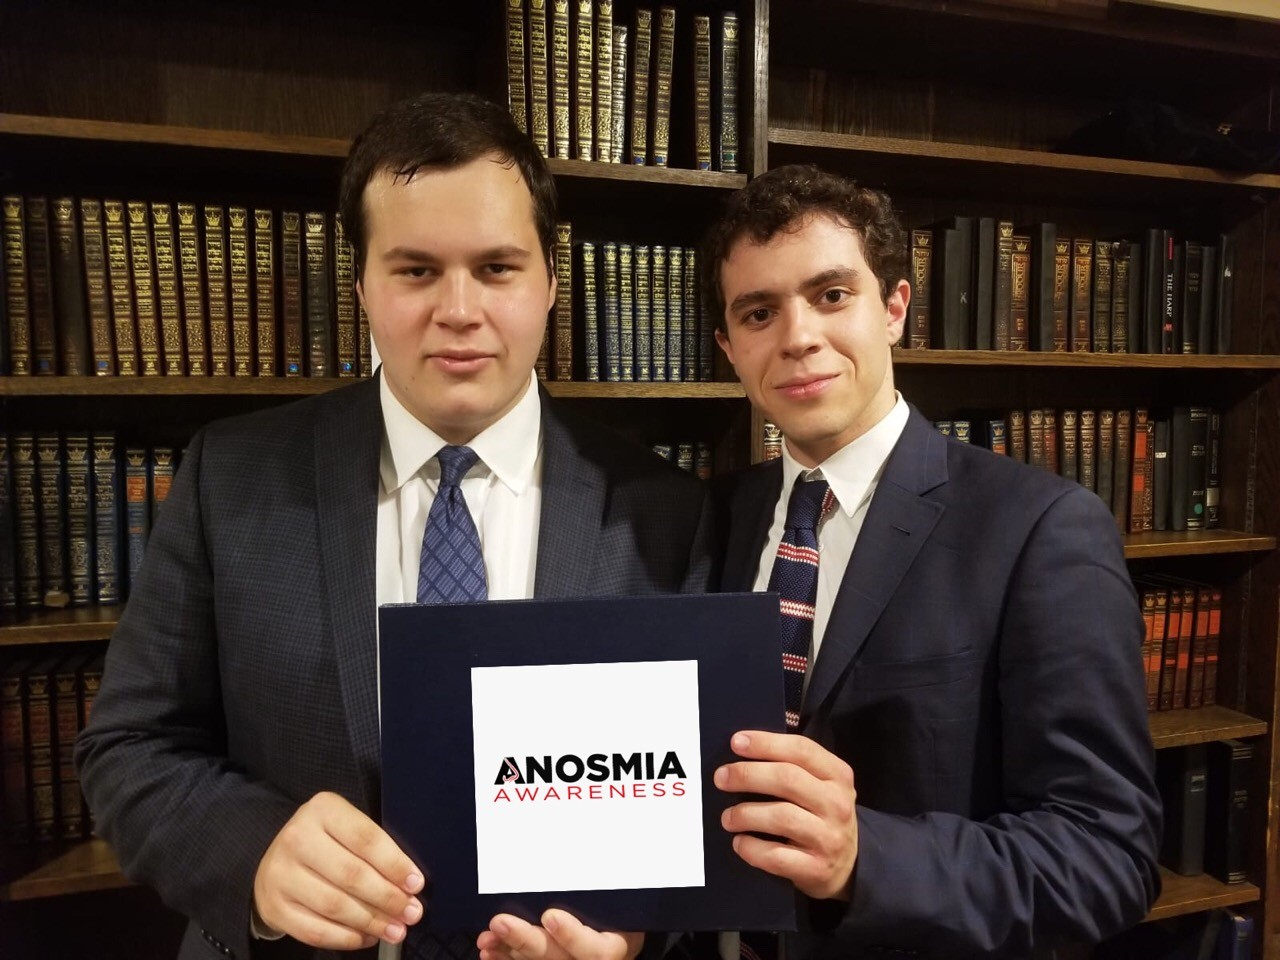 Jonah Loskove, left, and Dubi Fischman, spent their May working to raise awareness of anosmia, the inability to smell.